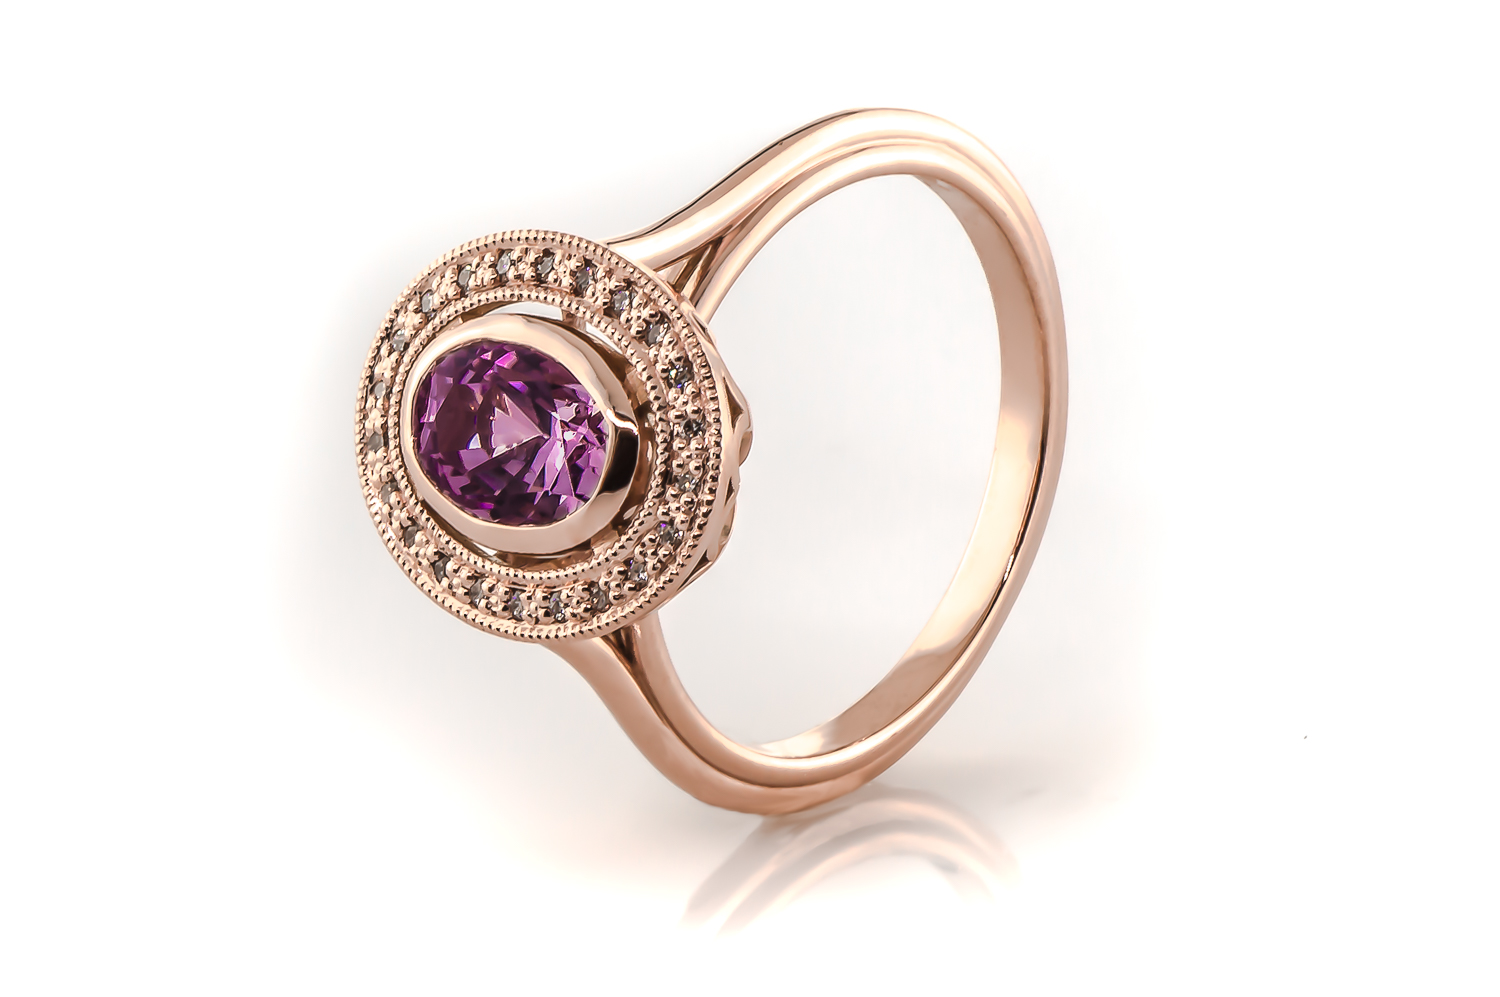 lockharts baily rose gold oval amethyst-5.jpg